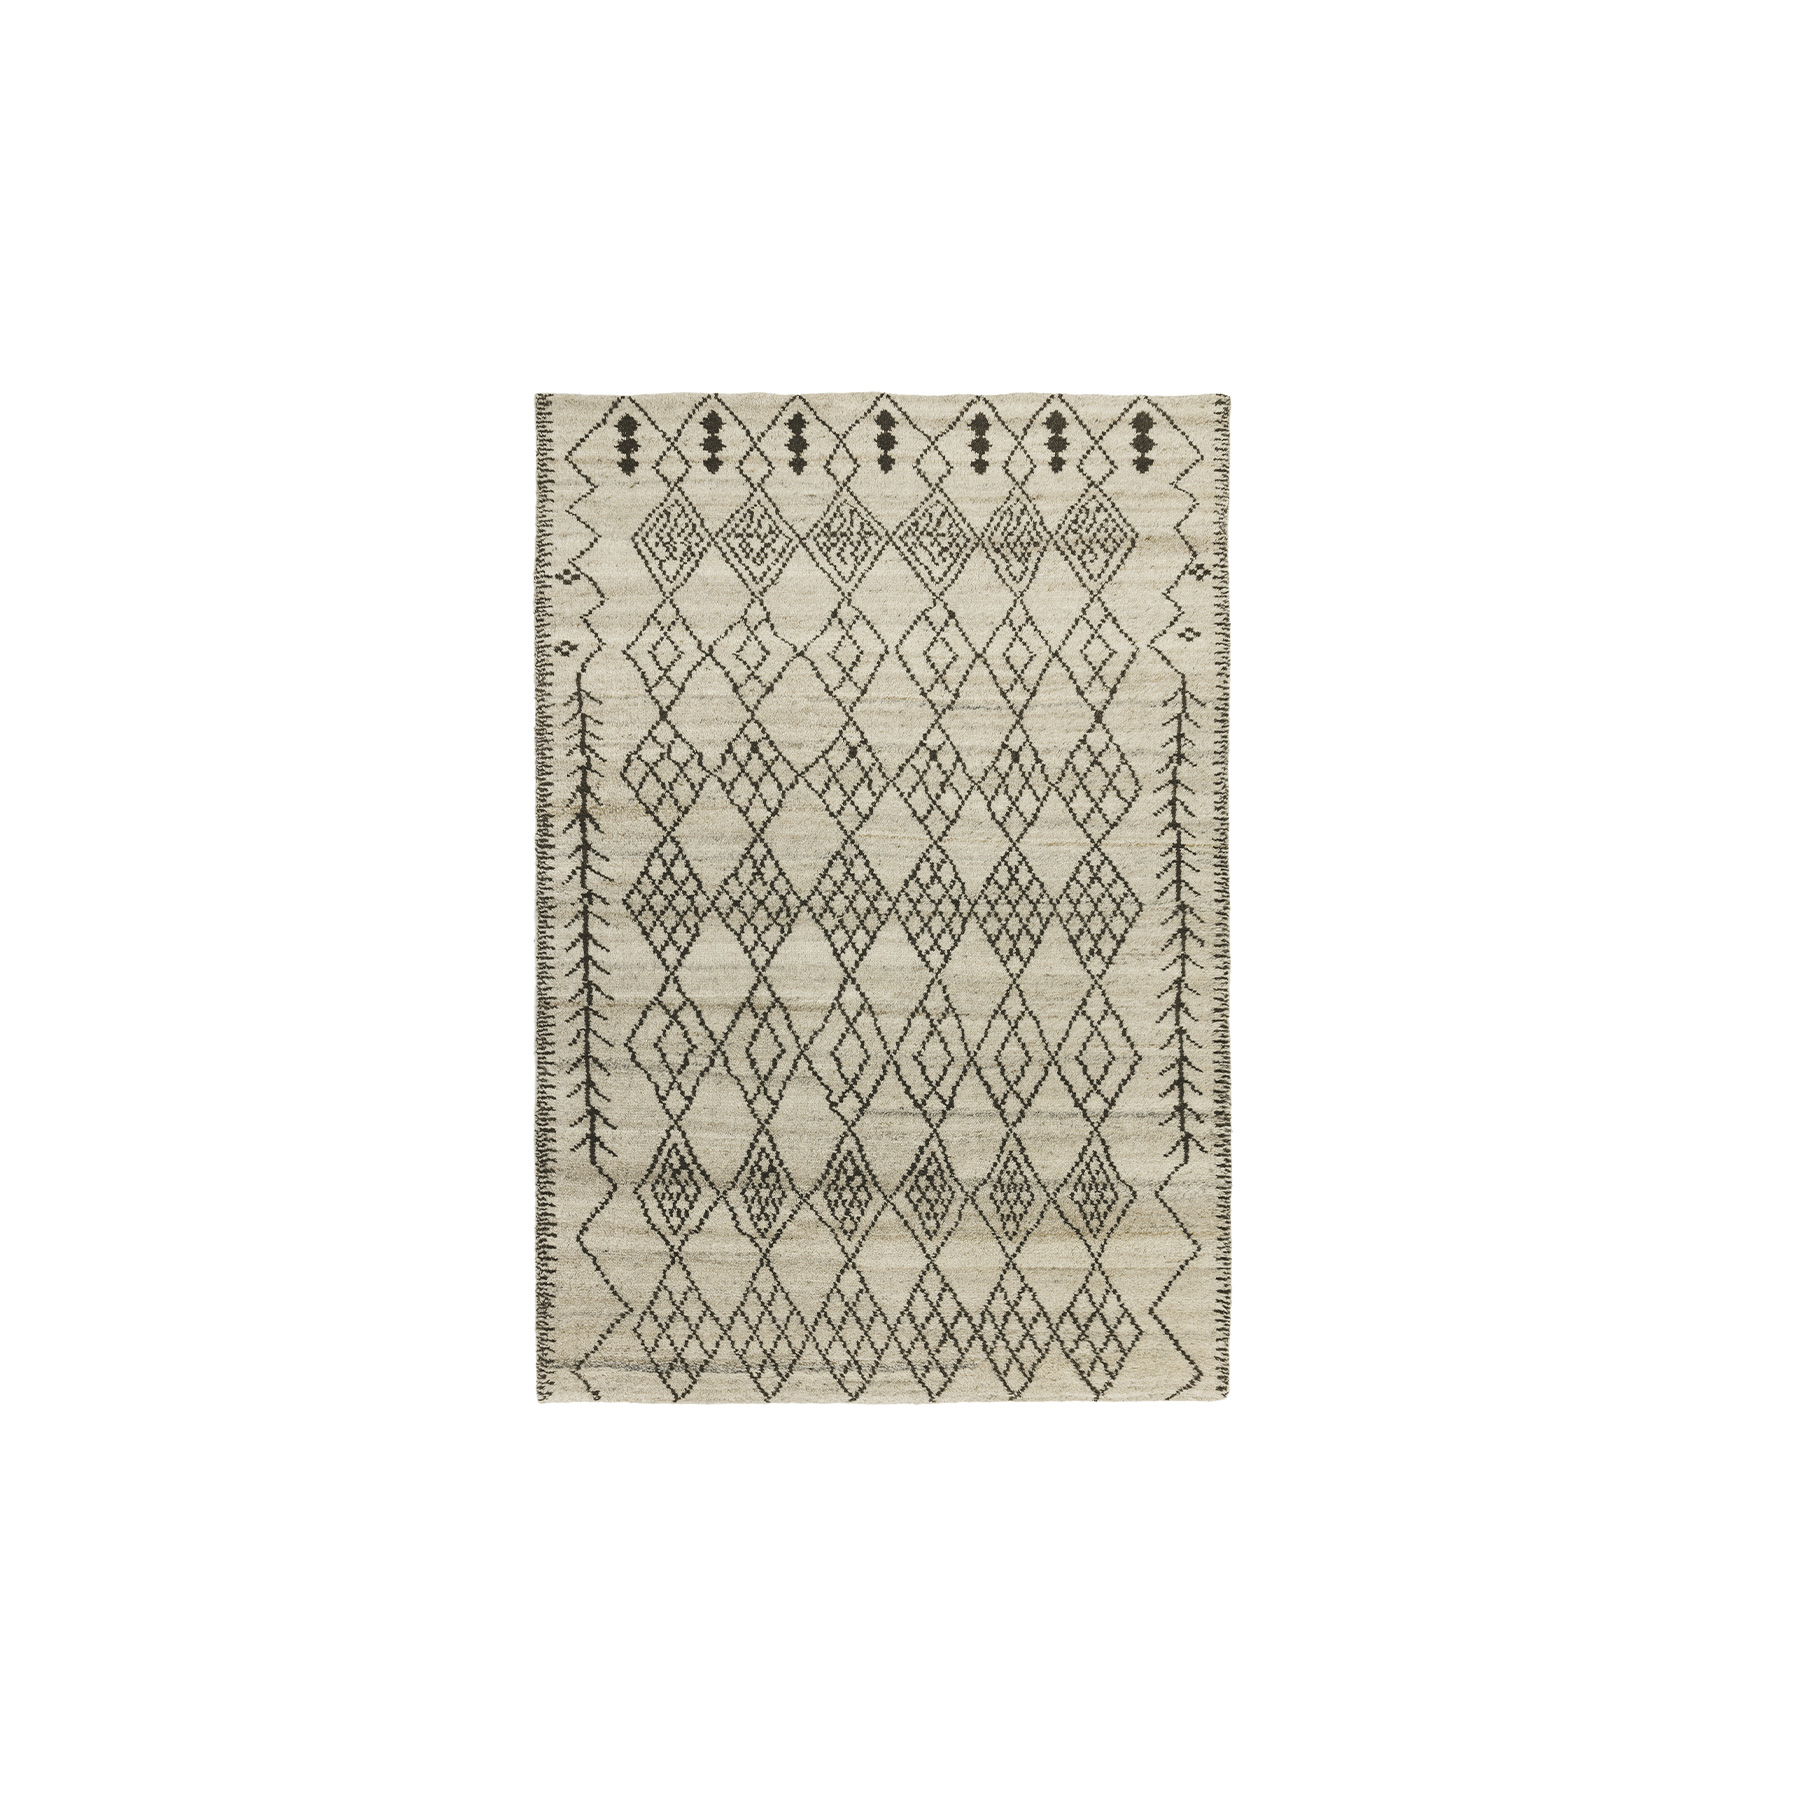 Amira 01 Rug - Part of the Classica Heritage Collection, timeless oriental and Persians deisgns are refreshed for the present day. Classic looks and traditional crafts feature throughout for sophisticated style and long-lasting appearences. Amira is a hand-knotted rug with a Maroccan Berber look, washed for a softer feel. Avaiable in different sizes.